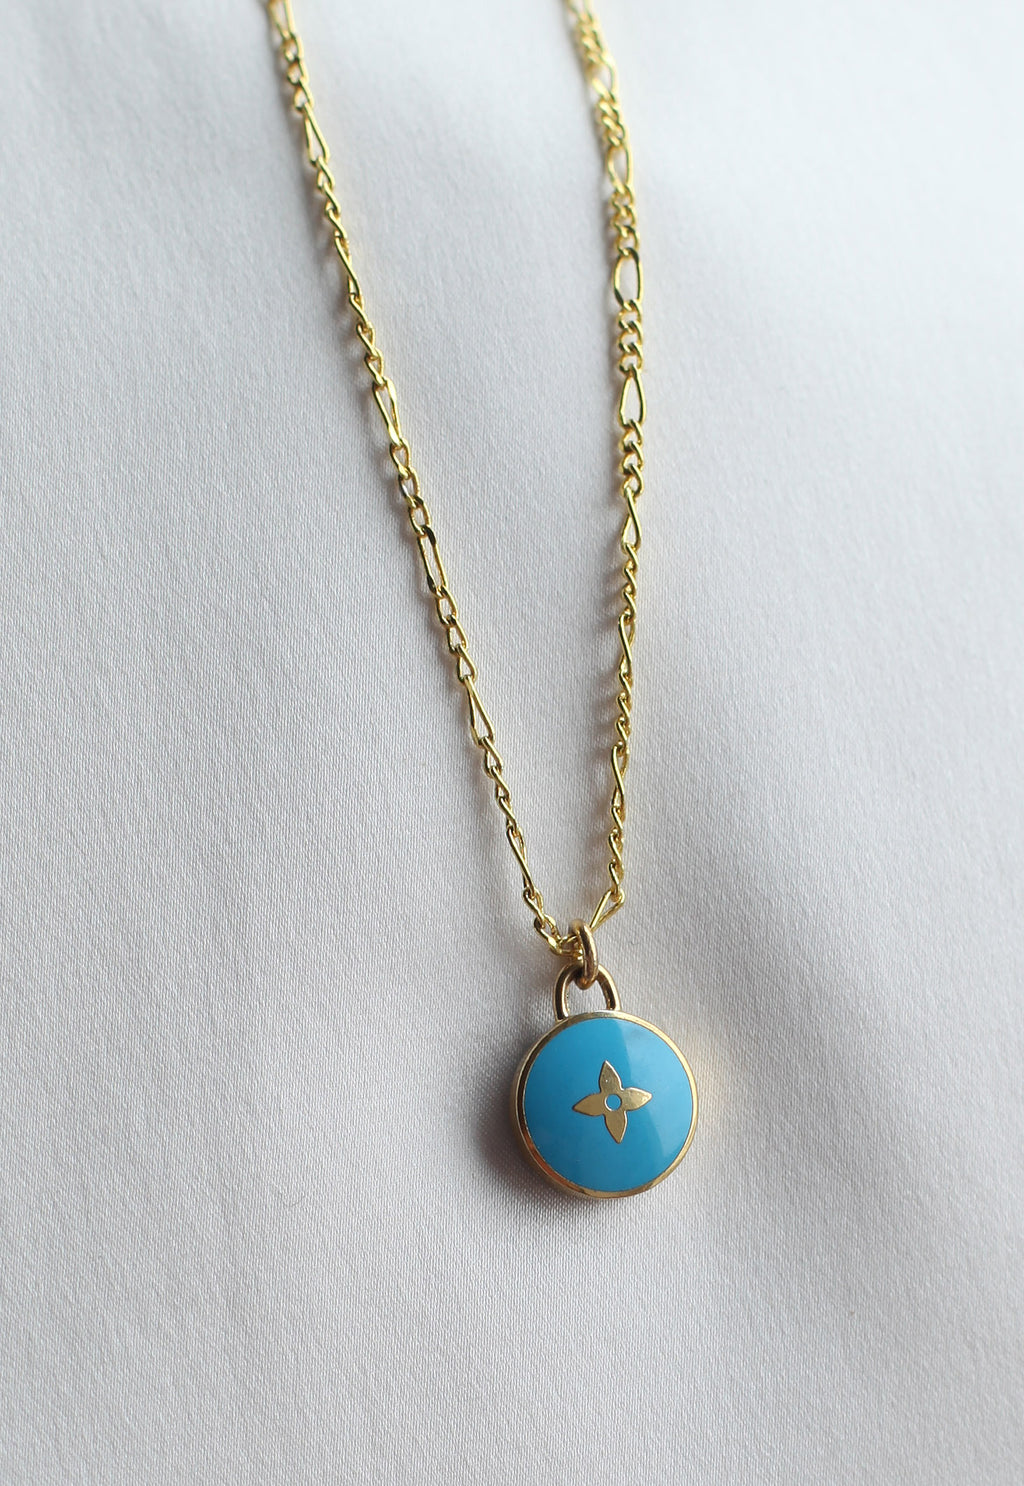 Reworked Louis Vuitton Blue Pendant Necklace